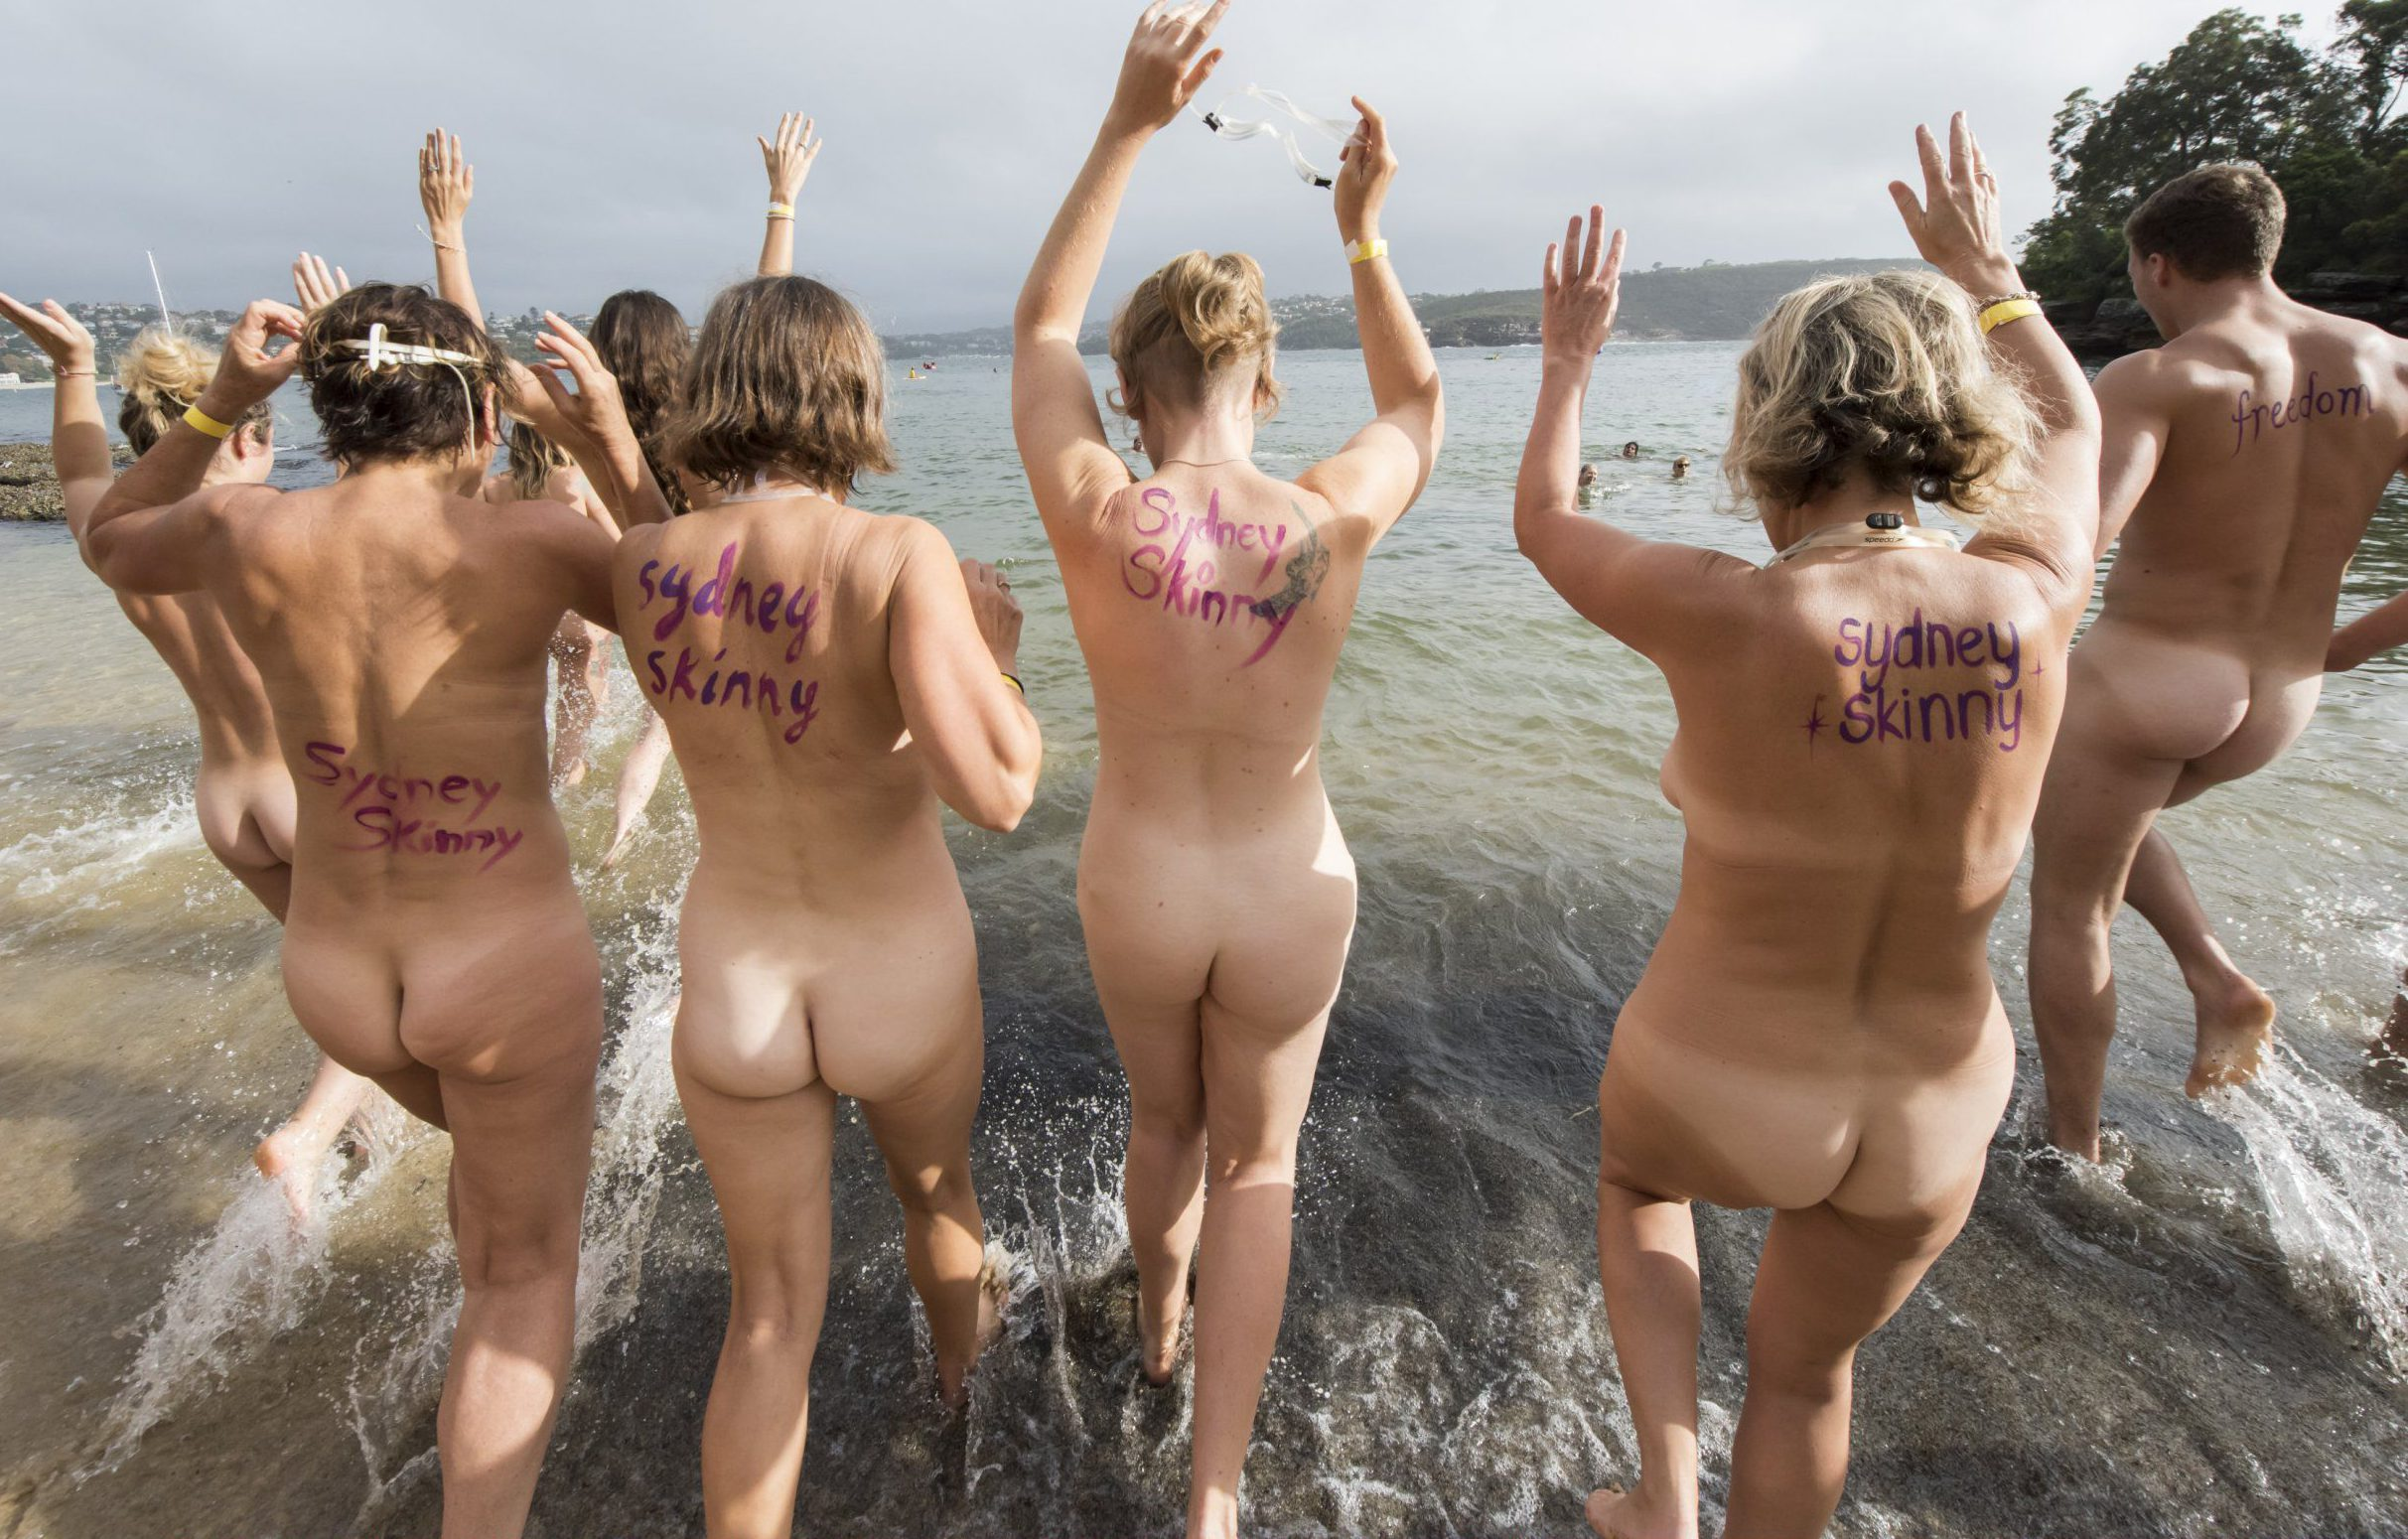 "SYDNEY, AUSTRALIA - MARCH 19: (EDITORS NOTE: Image contains nudity.) Swimmers taking part in the ""Sydney Skinny"" on March 19, 2017 in Sydney, Australia. The annual nude swim event encourages swimmers to raise money for a number of Australian charities and good causes. (Photo by James D. Morgan/Getty Images)"